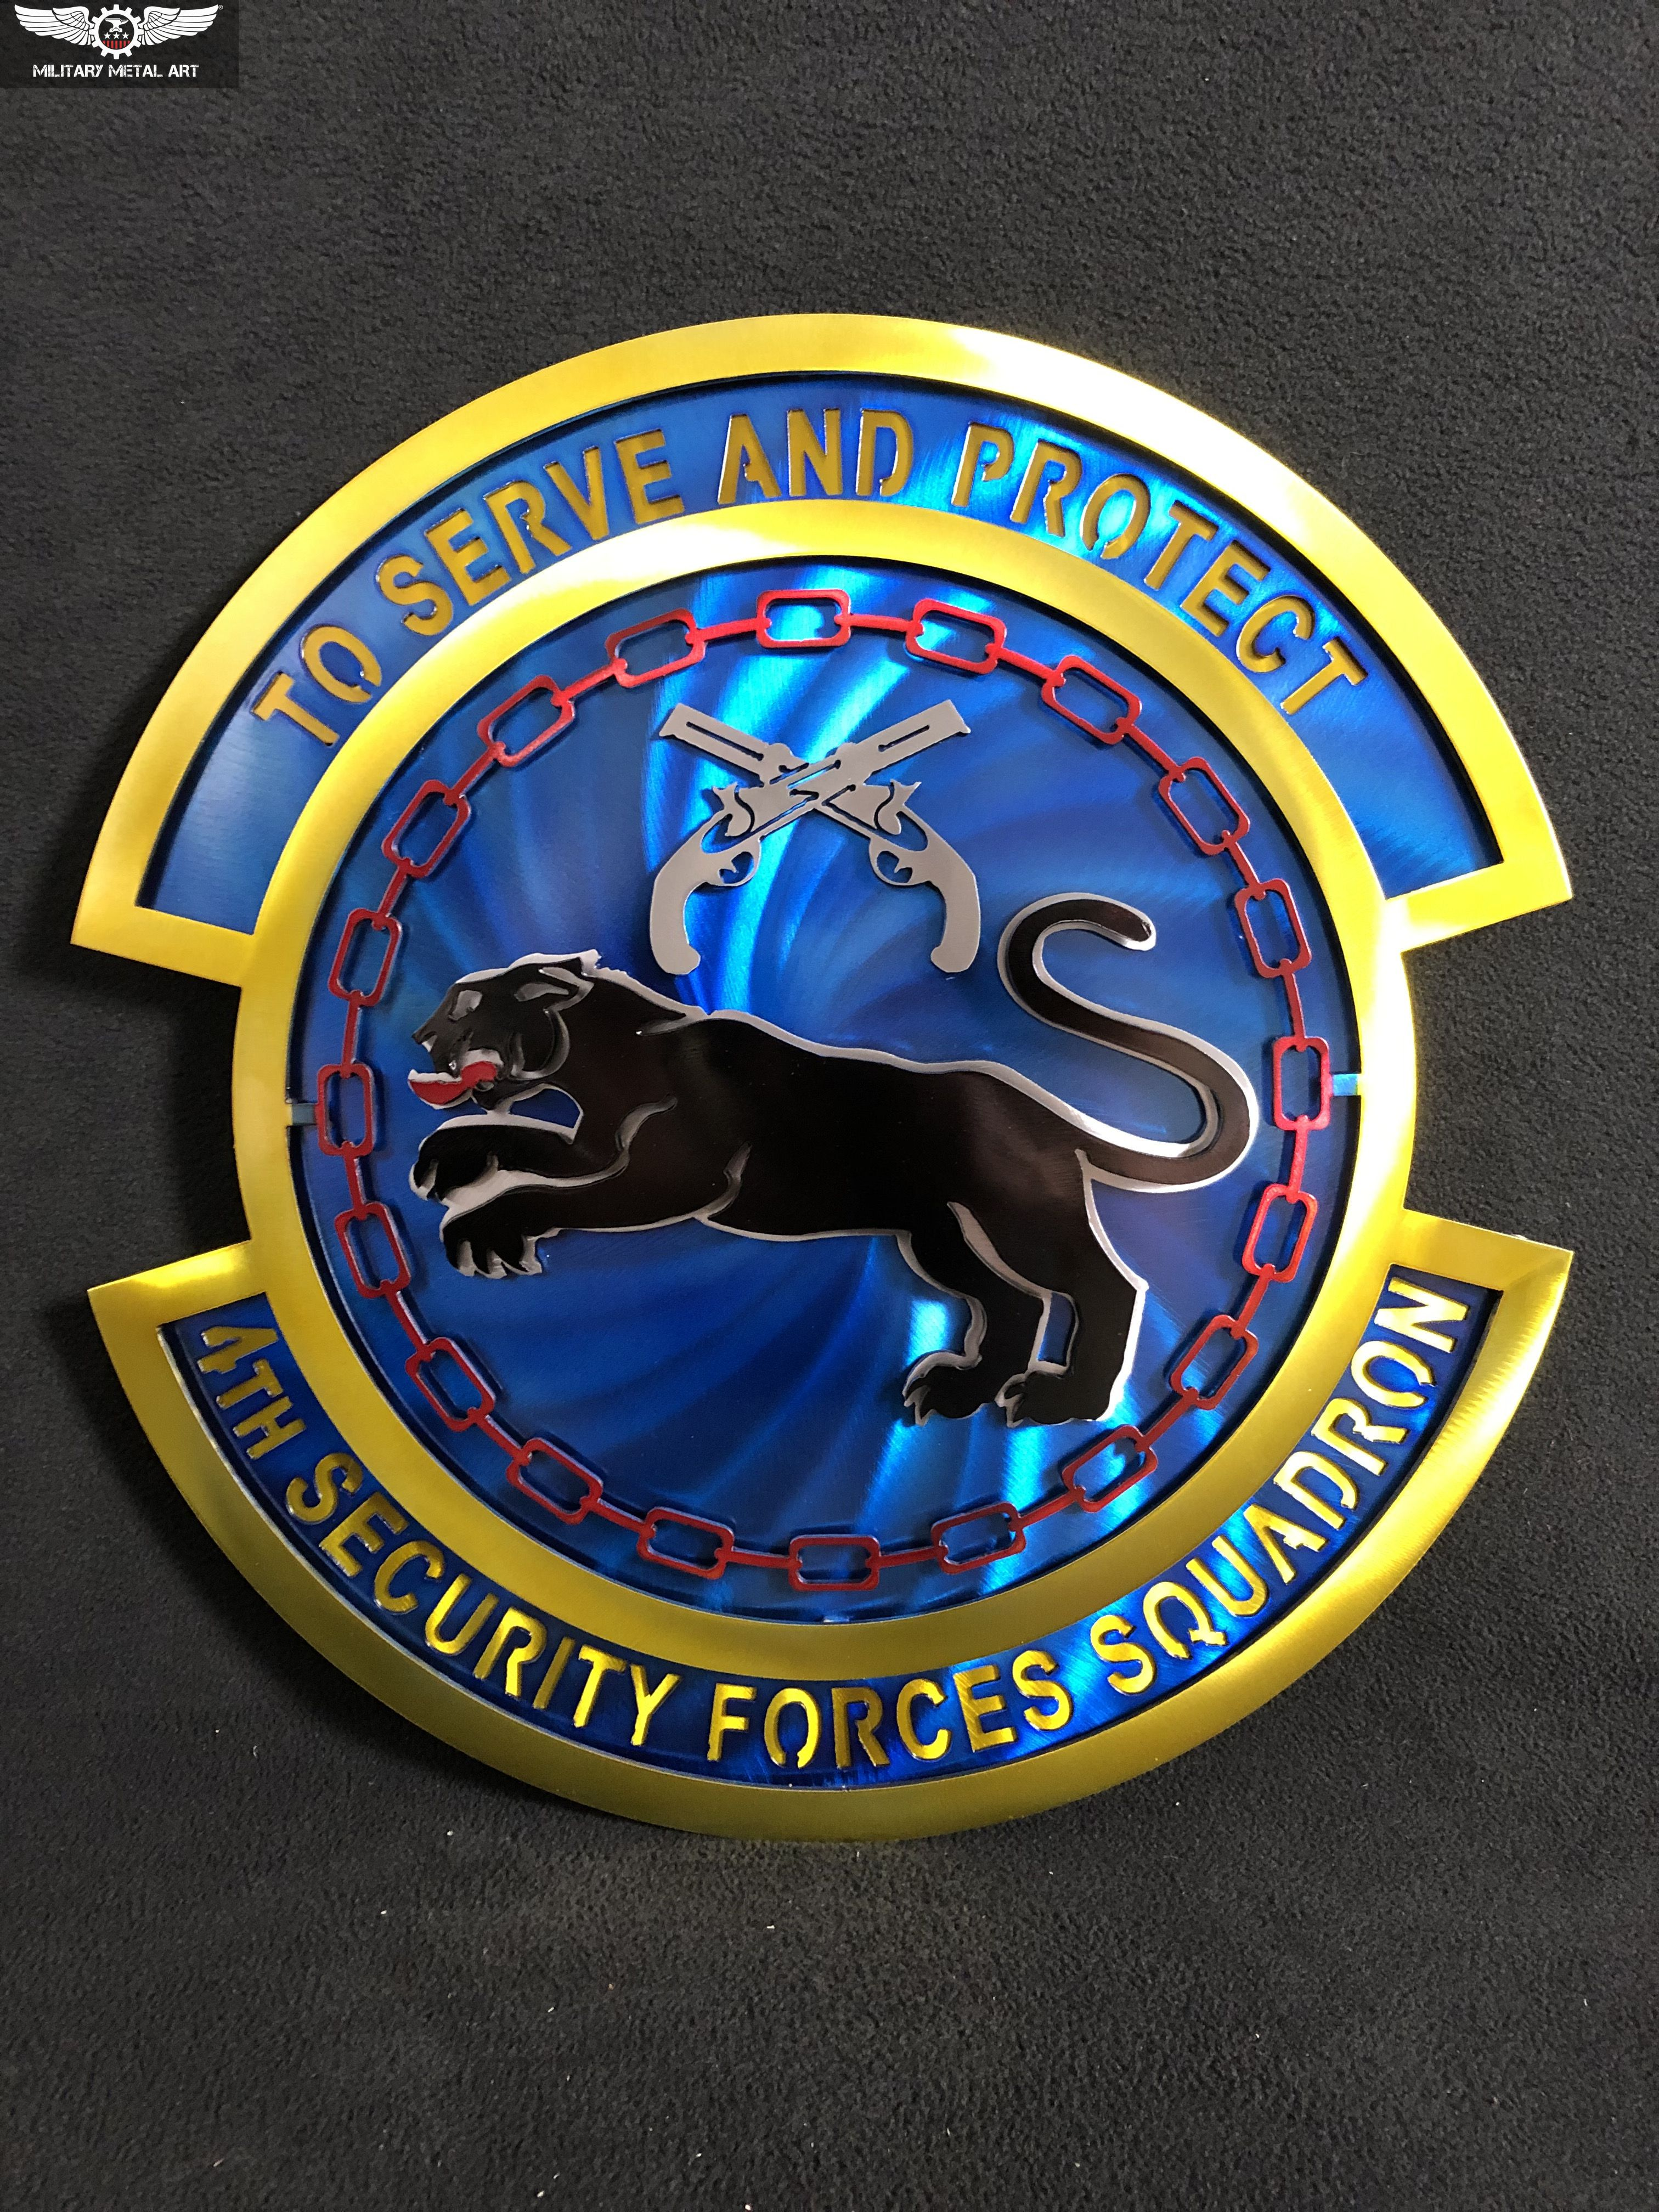 4th Security Forces Squadron Military Artwork Metal Art Art